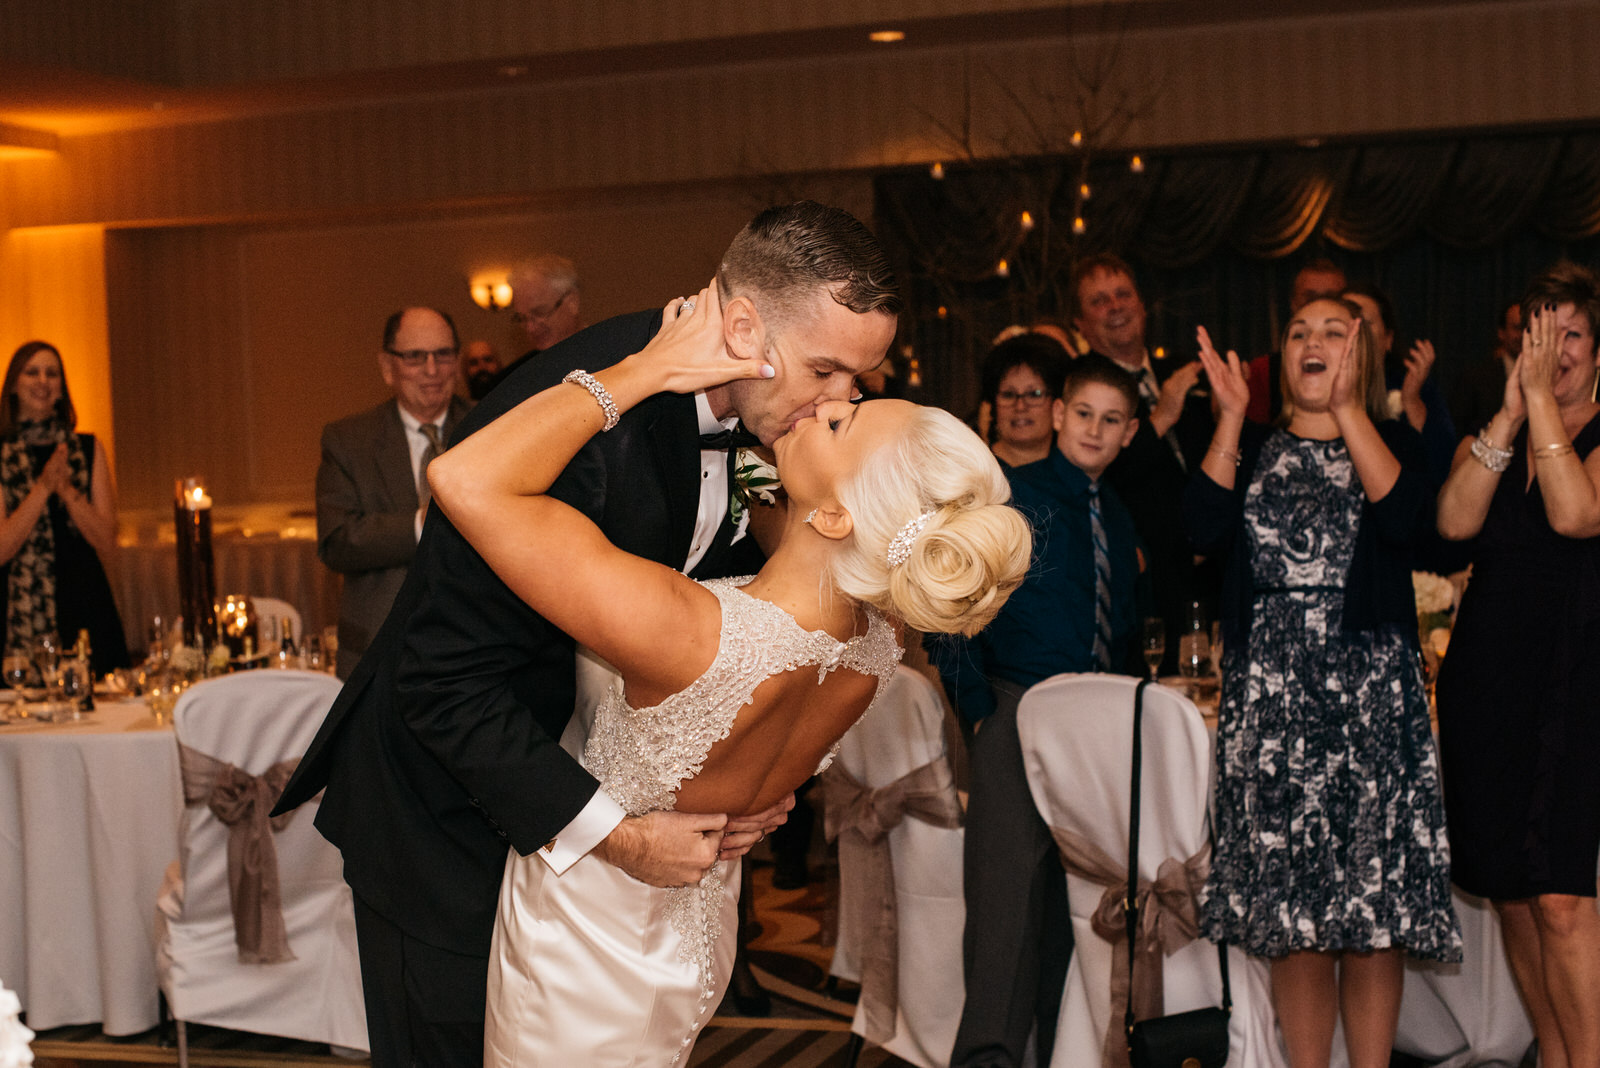 hilton_garden_inn_southpointe_pittsburgh_weddings_89.jpg